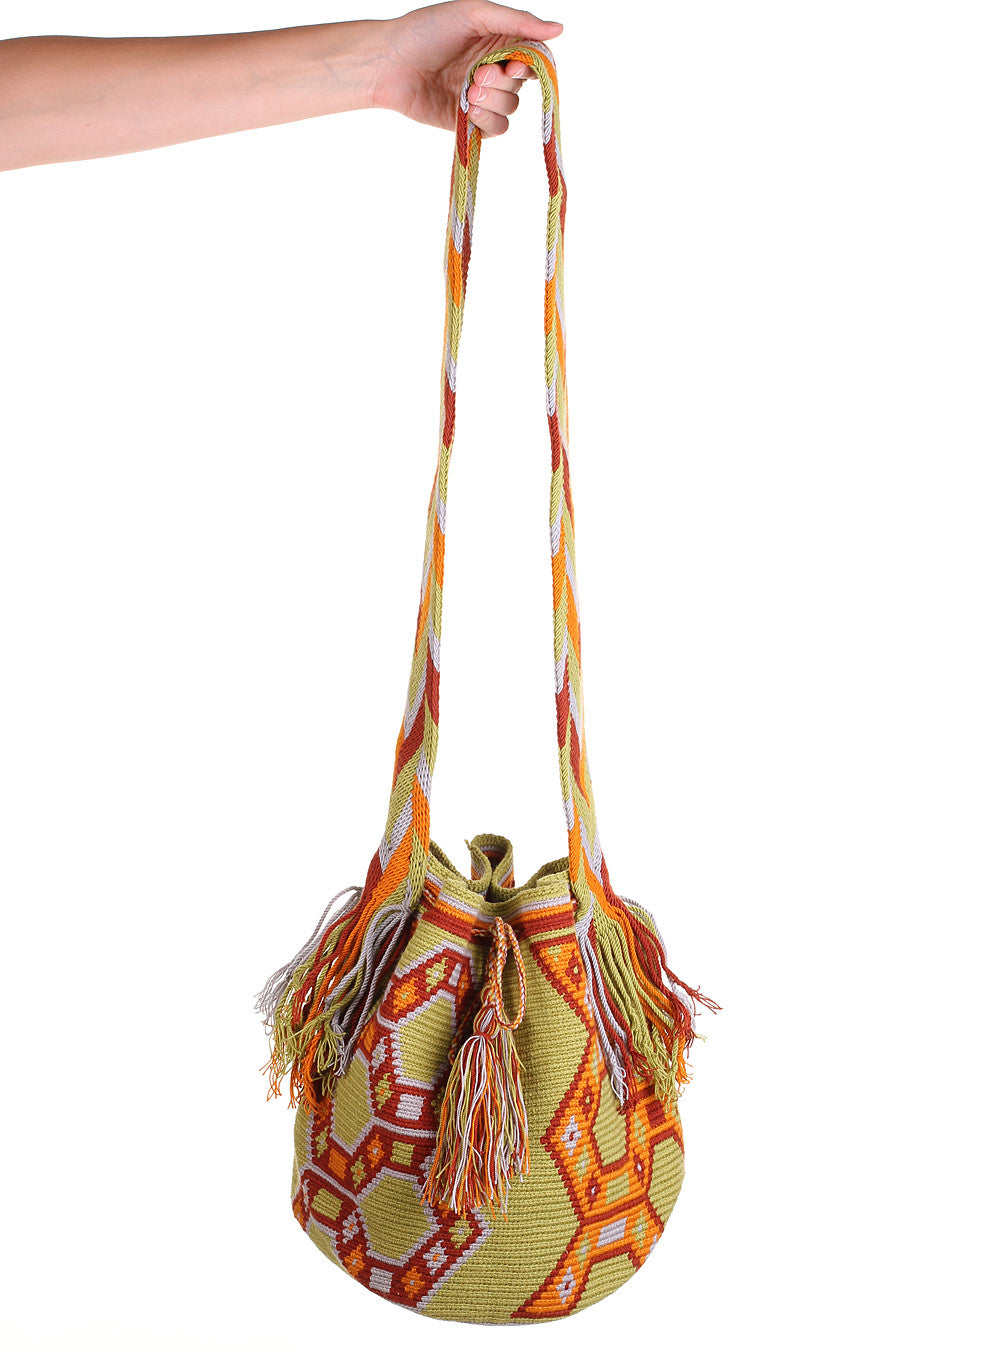 WB103 - Crochet Wayuu Bucket Bag – One-of-a-kind Design